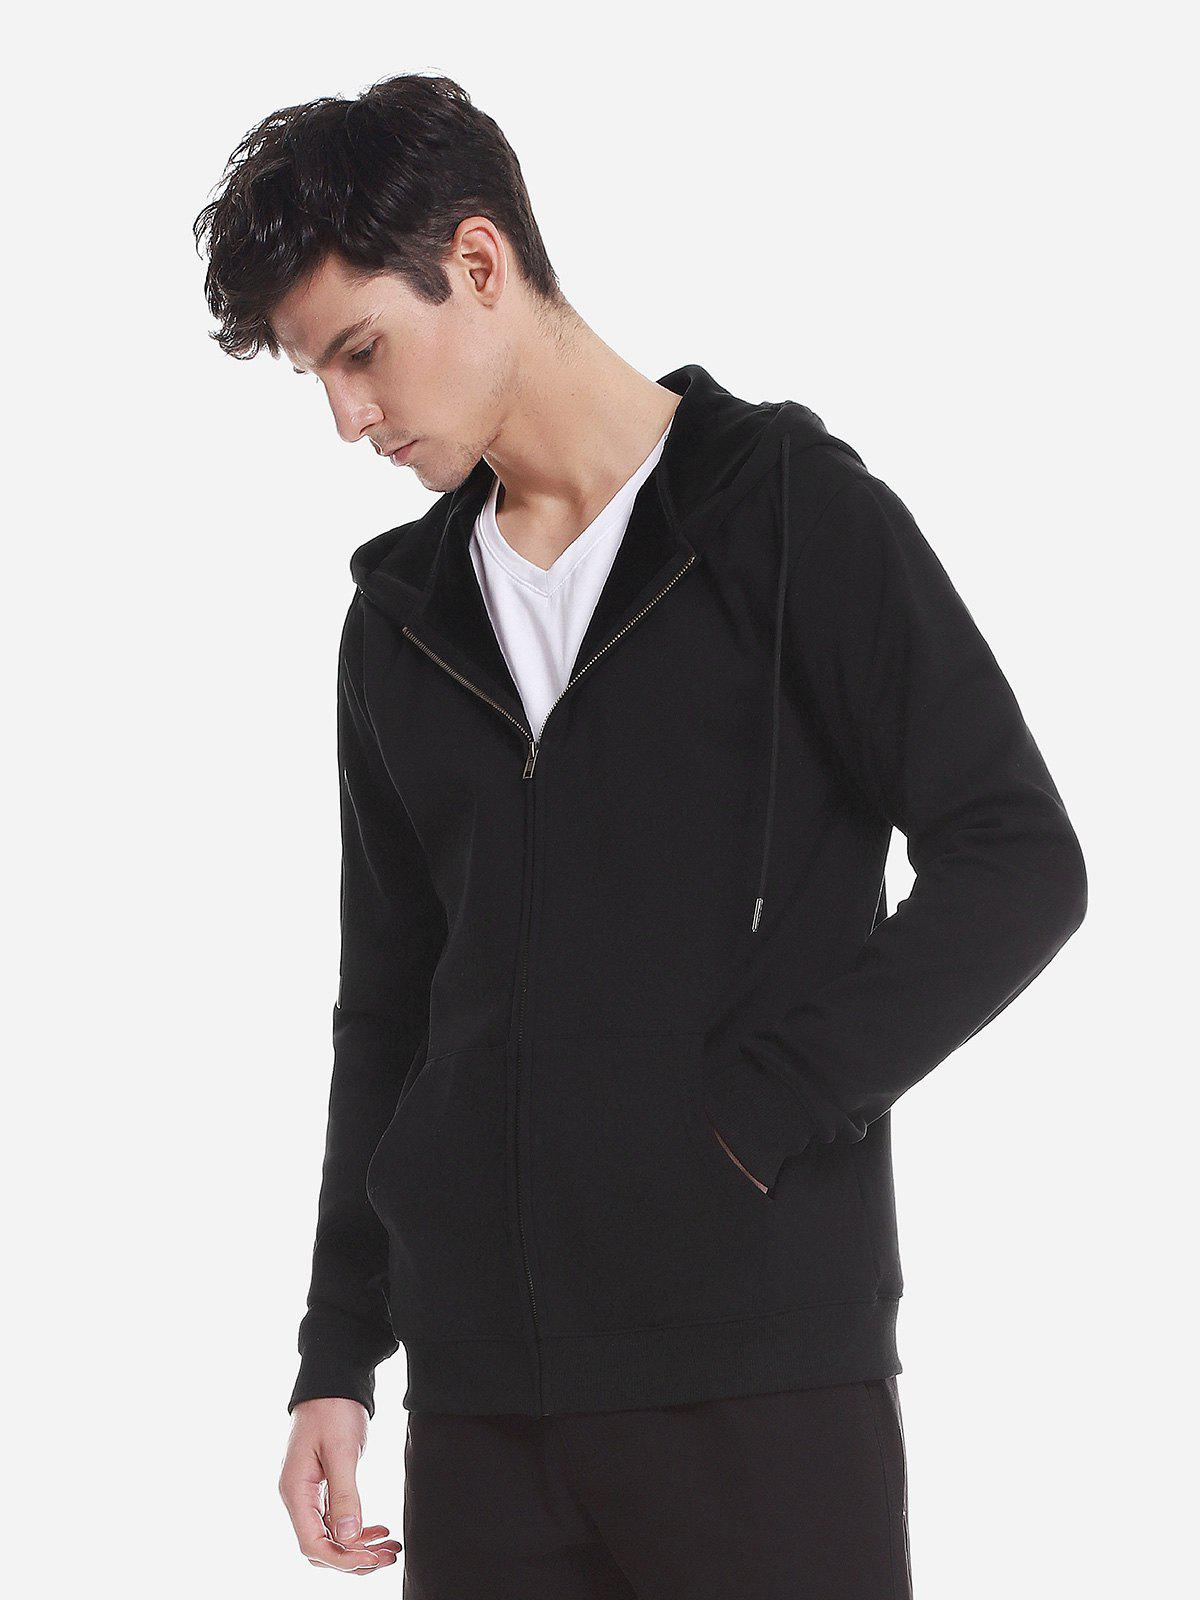 ZAN.STYLE Zip Up Pocket Hooded Sweatshirt - BLACK 3XL